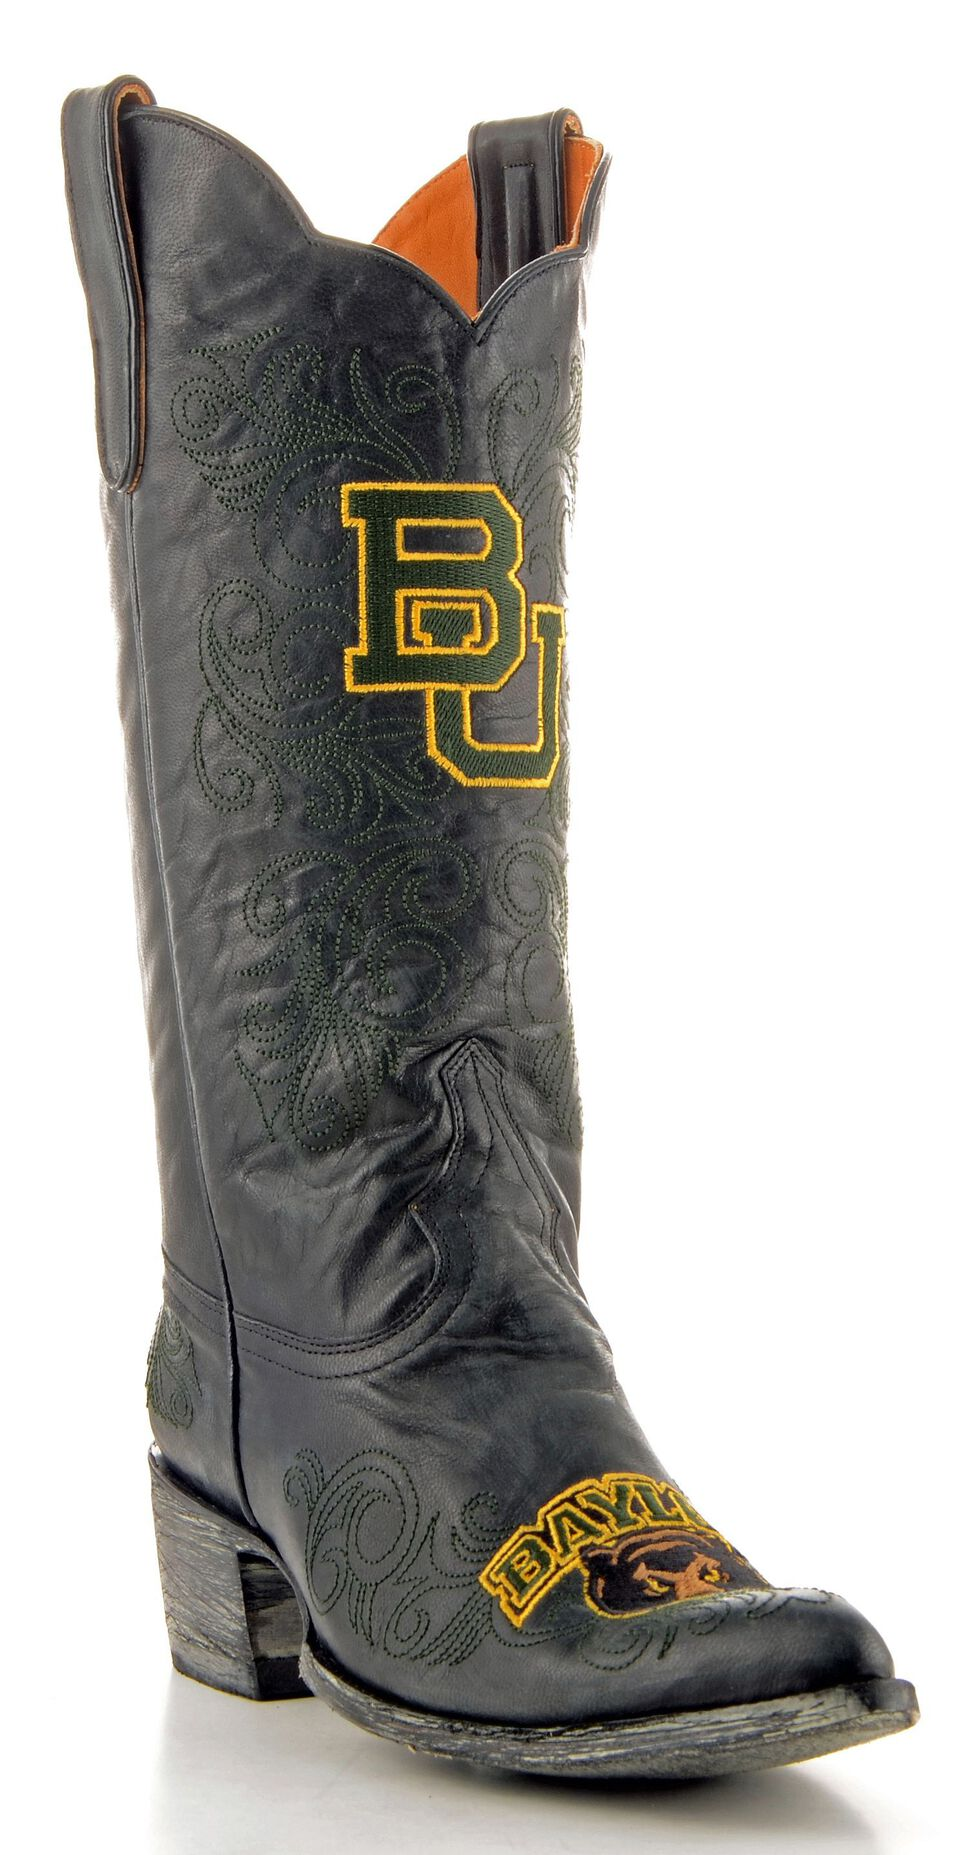 Gameday Baylor University Cowgirl Boots - Pointed Toe, Black, hi-res